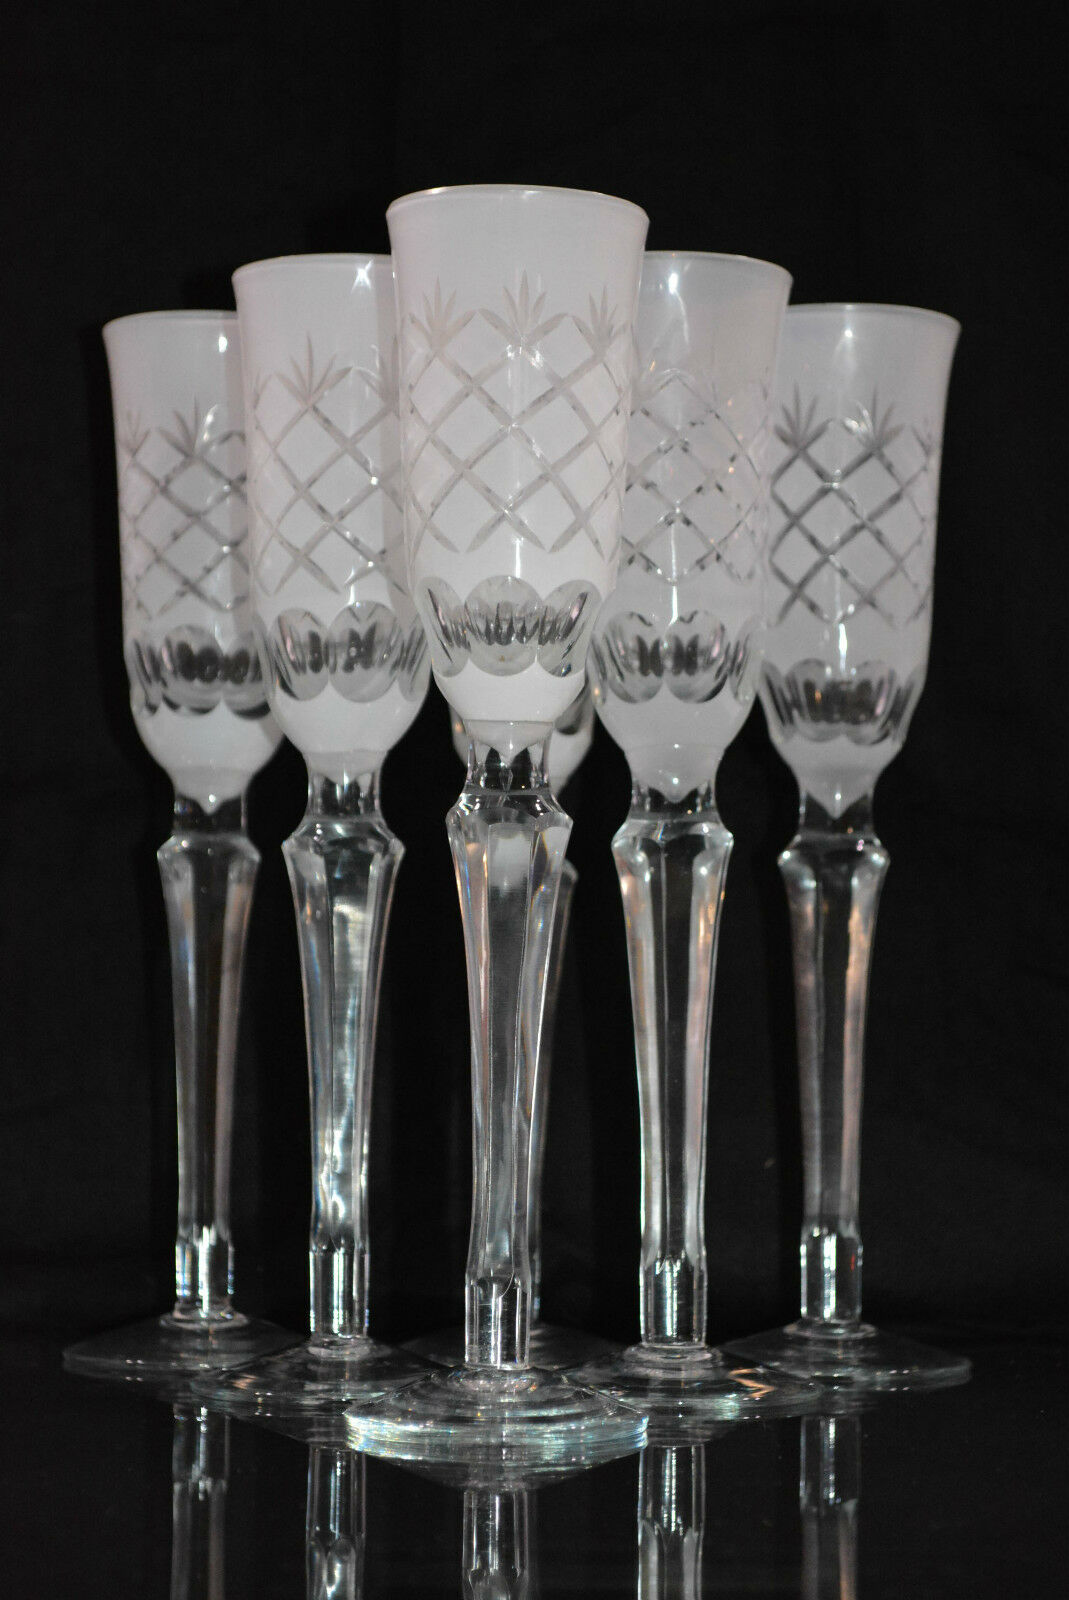 lot de 6 verres flutes a champagne en verre blanc taille eur 170 00 picclick fr. Black Bedroom Furniture Sets. Home Design Ideas